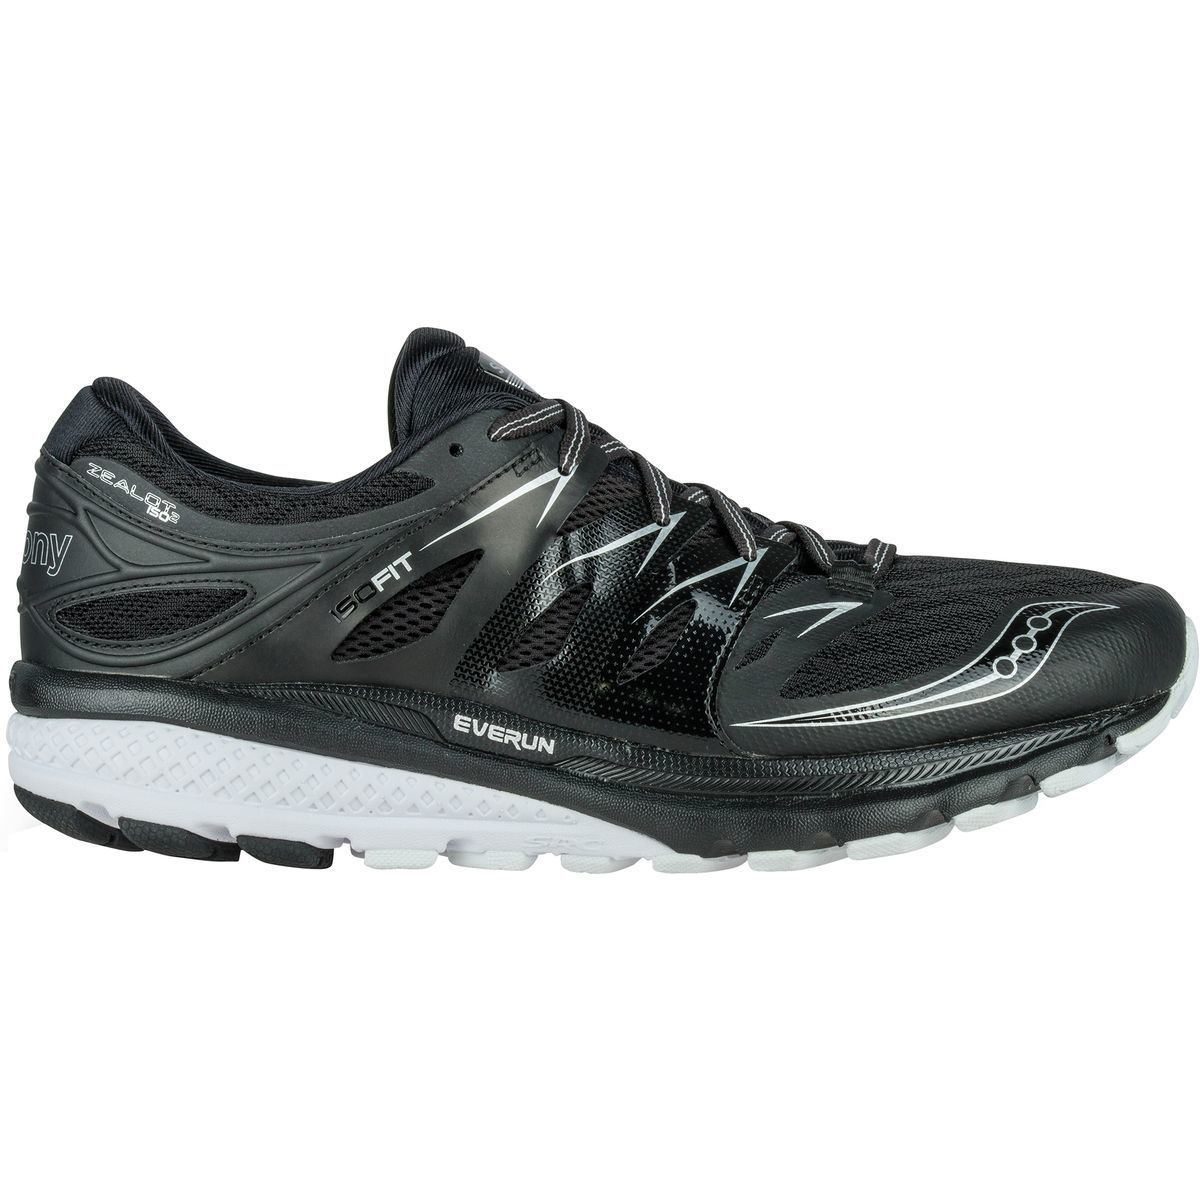 Saucony Zealot Iso 2 Running Shoe Men's